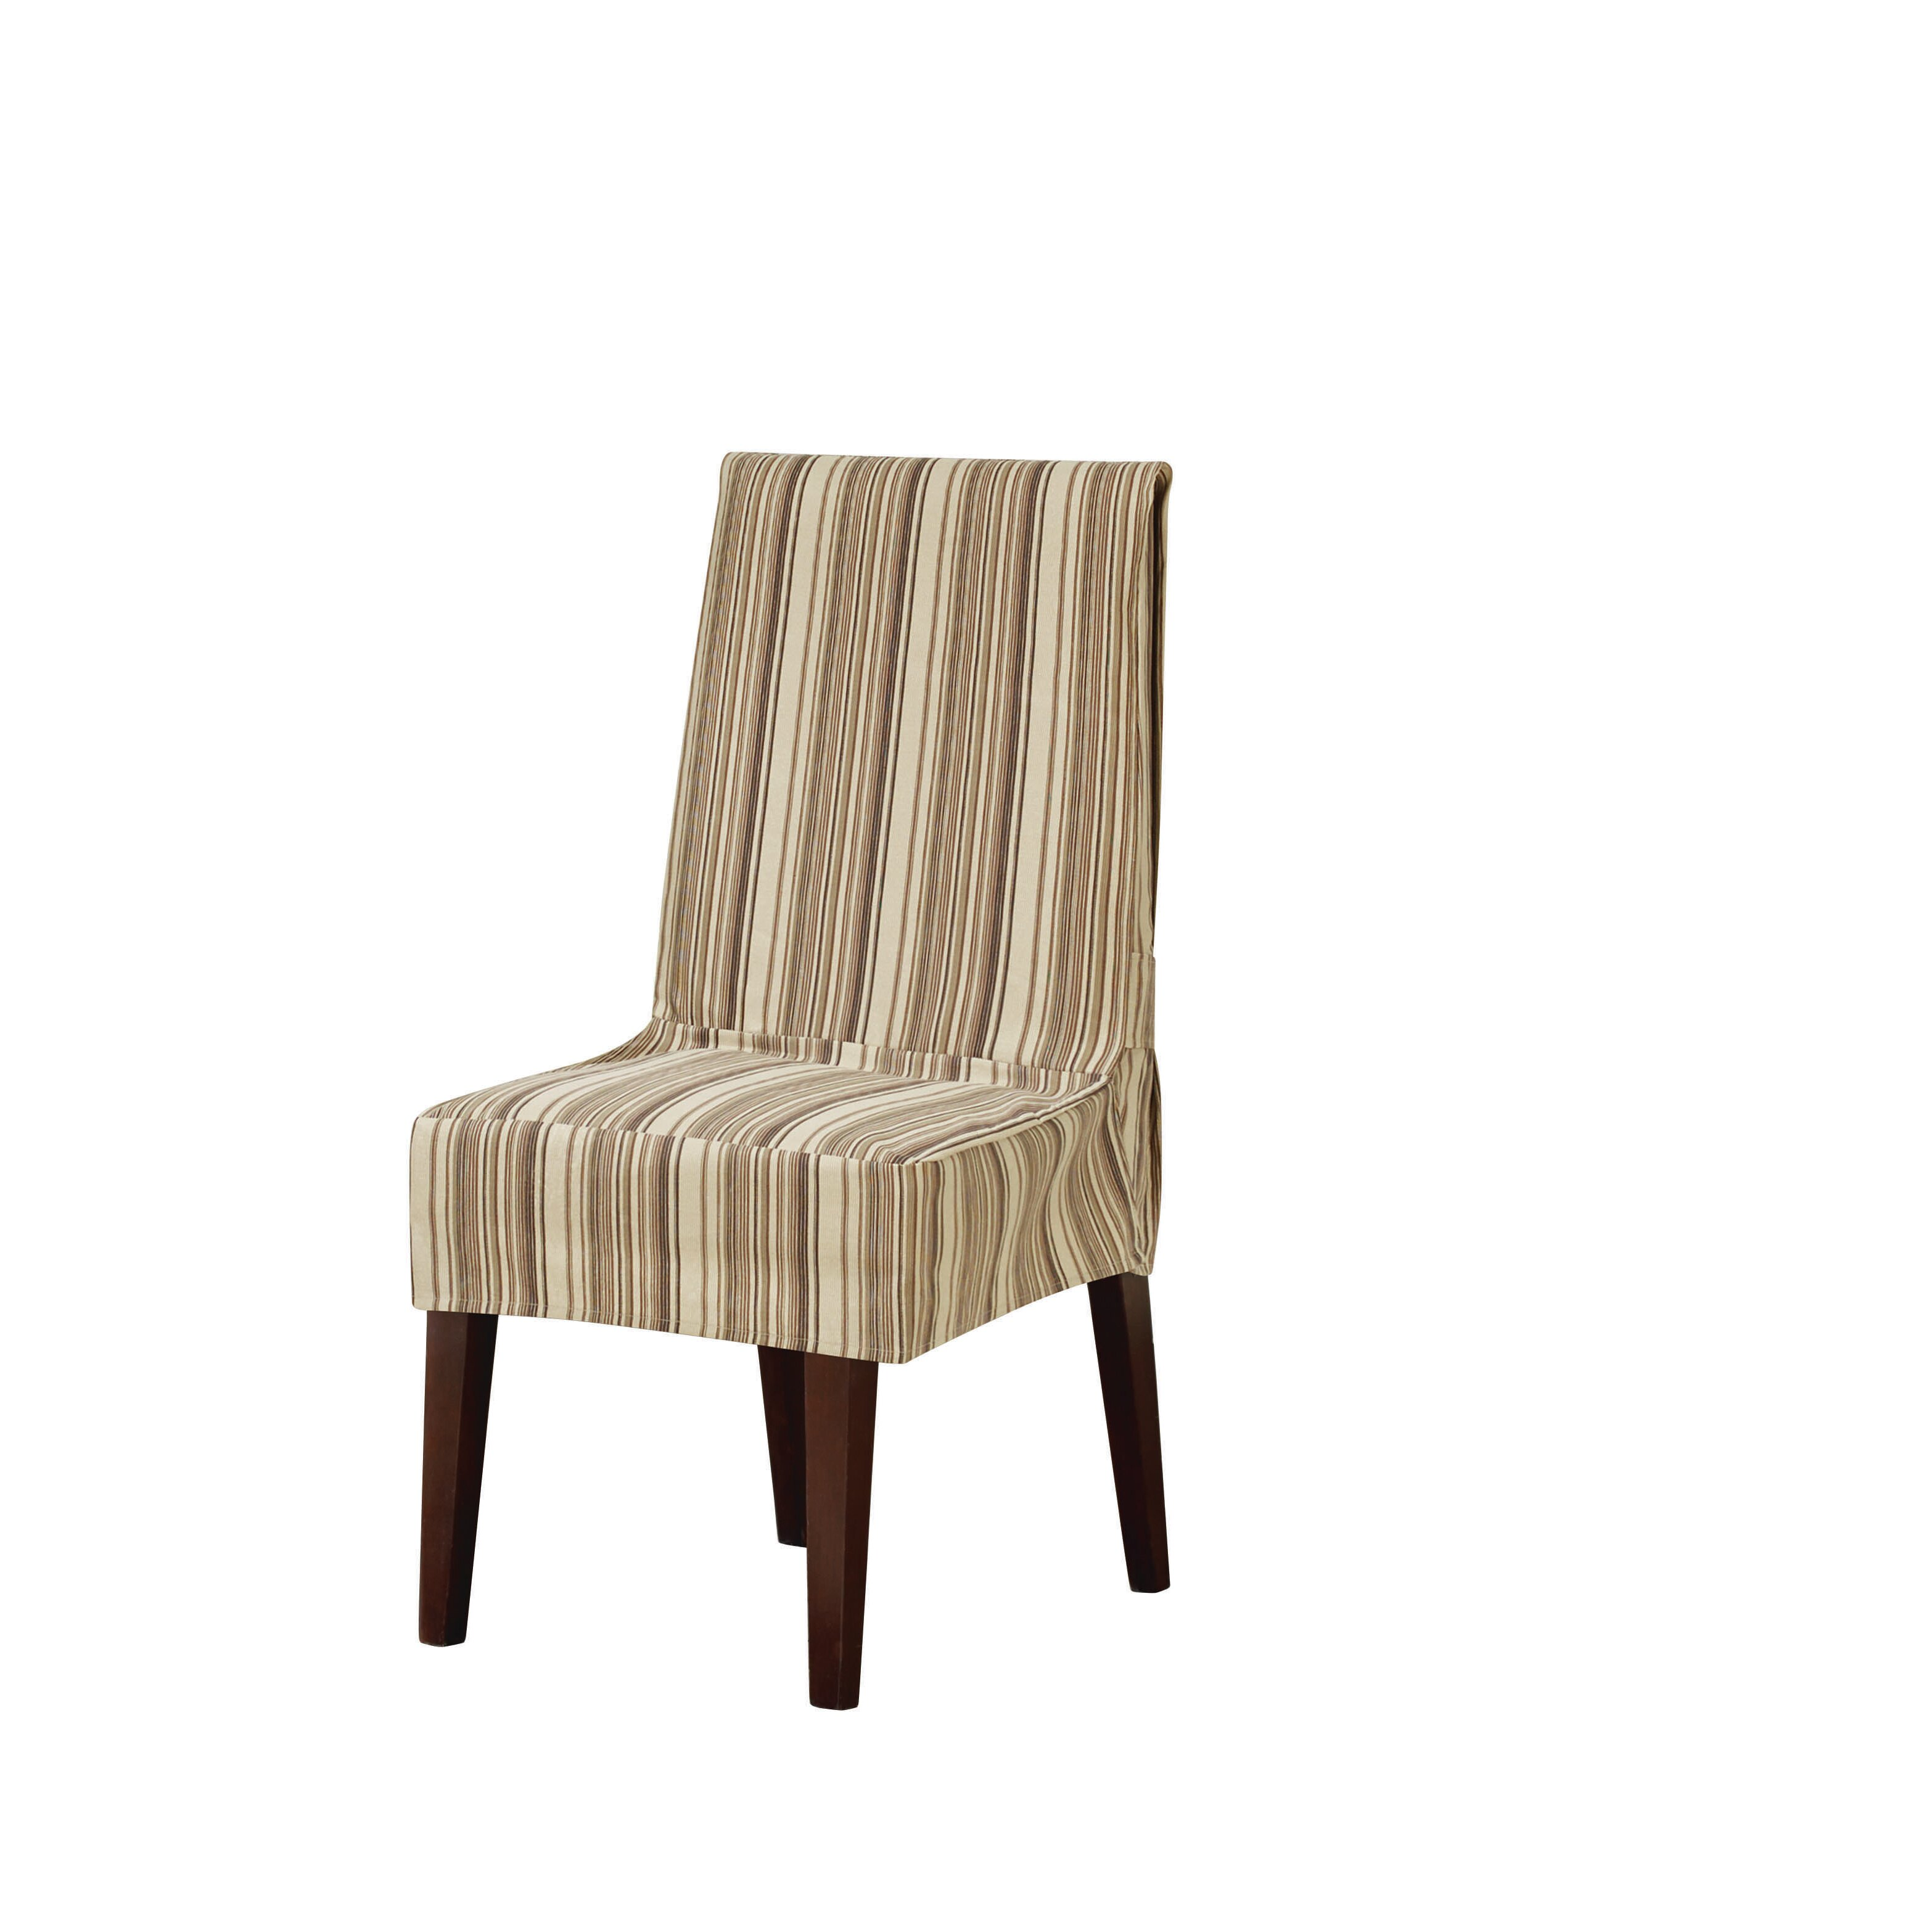 Rowico Lulworth Beige Loose Striped Linen Cover Dining